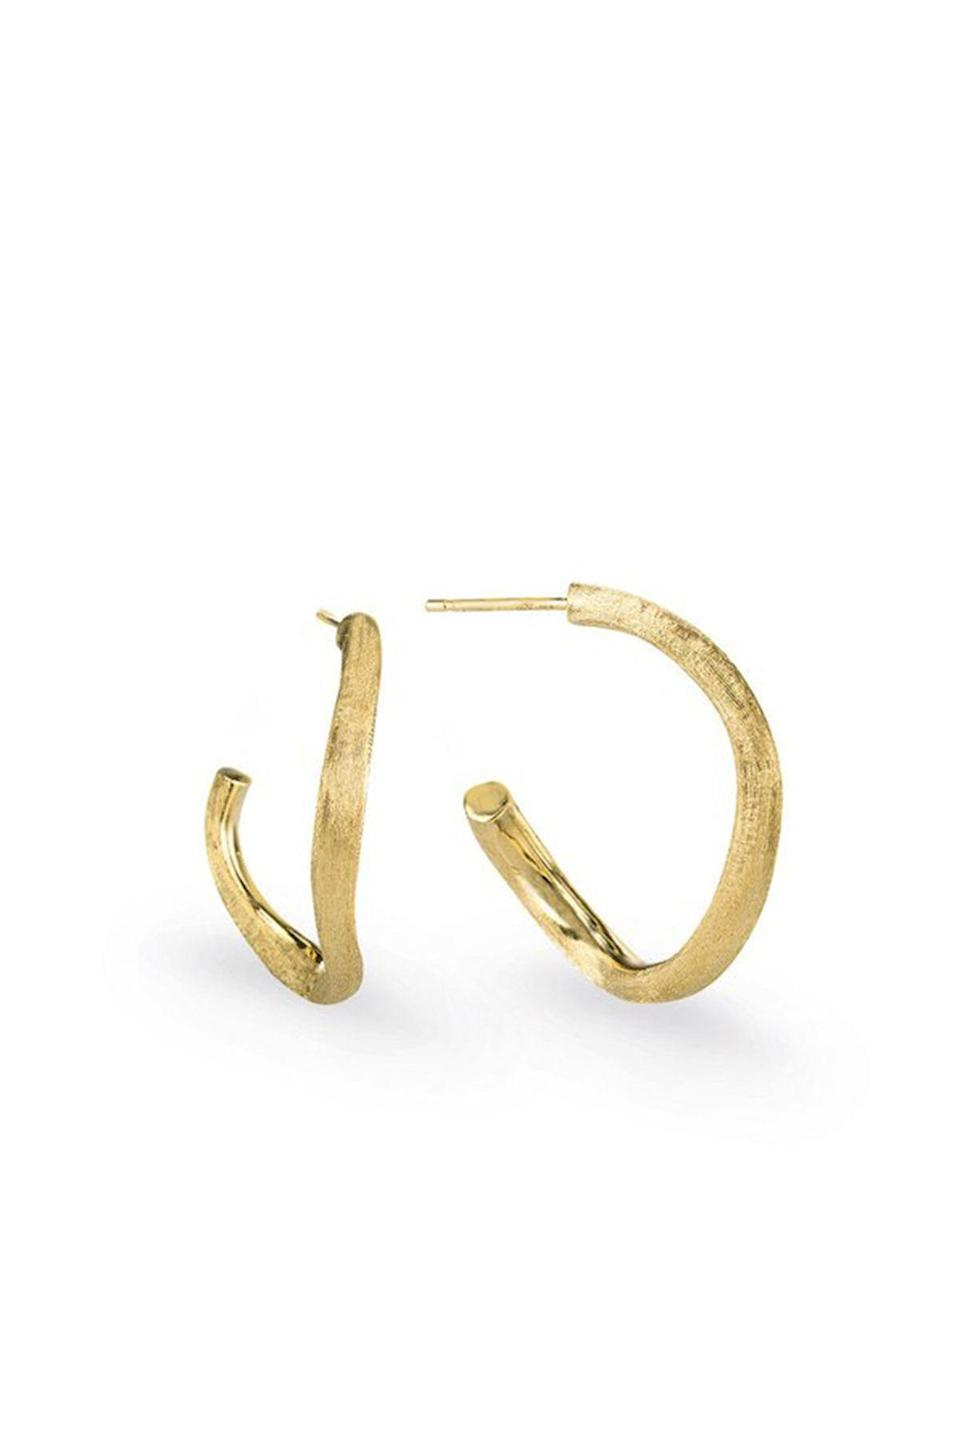 """<p><strong>Marco Bicego</strong></p><p>marcobicego.com</p><p><strong>$965.00</strong></p><p><a href=""""https://us.marcobicego.com/products/jaipur-gold-hoop-earrings-ob1469y02"""" rel=""""nofollow noopener"""" target=""""_blank"""" data-ylk=""""slk:Shop Now"""" class=""""link rapid-noclick-resp"""">Shop Now</a></p><p>Marco Bicego's minimalist take on glamour is evident in these winding solid gold hoops.</p>"""